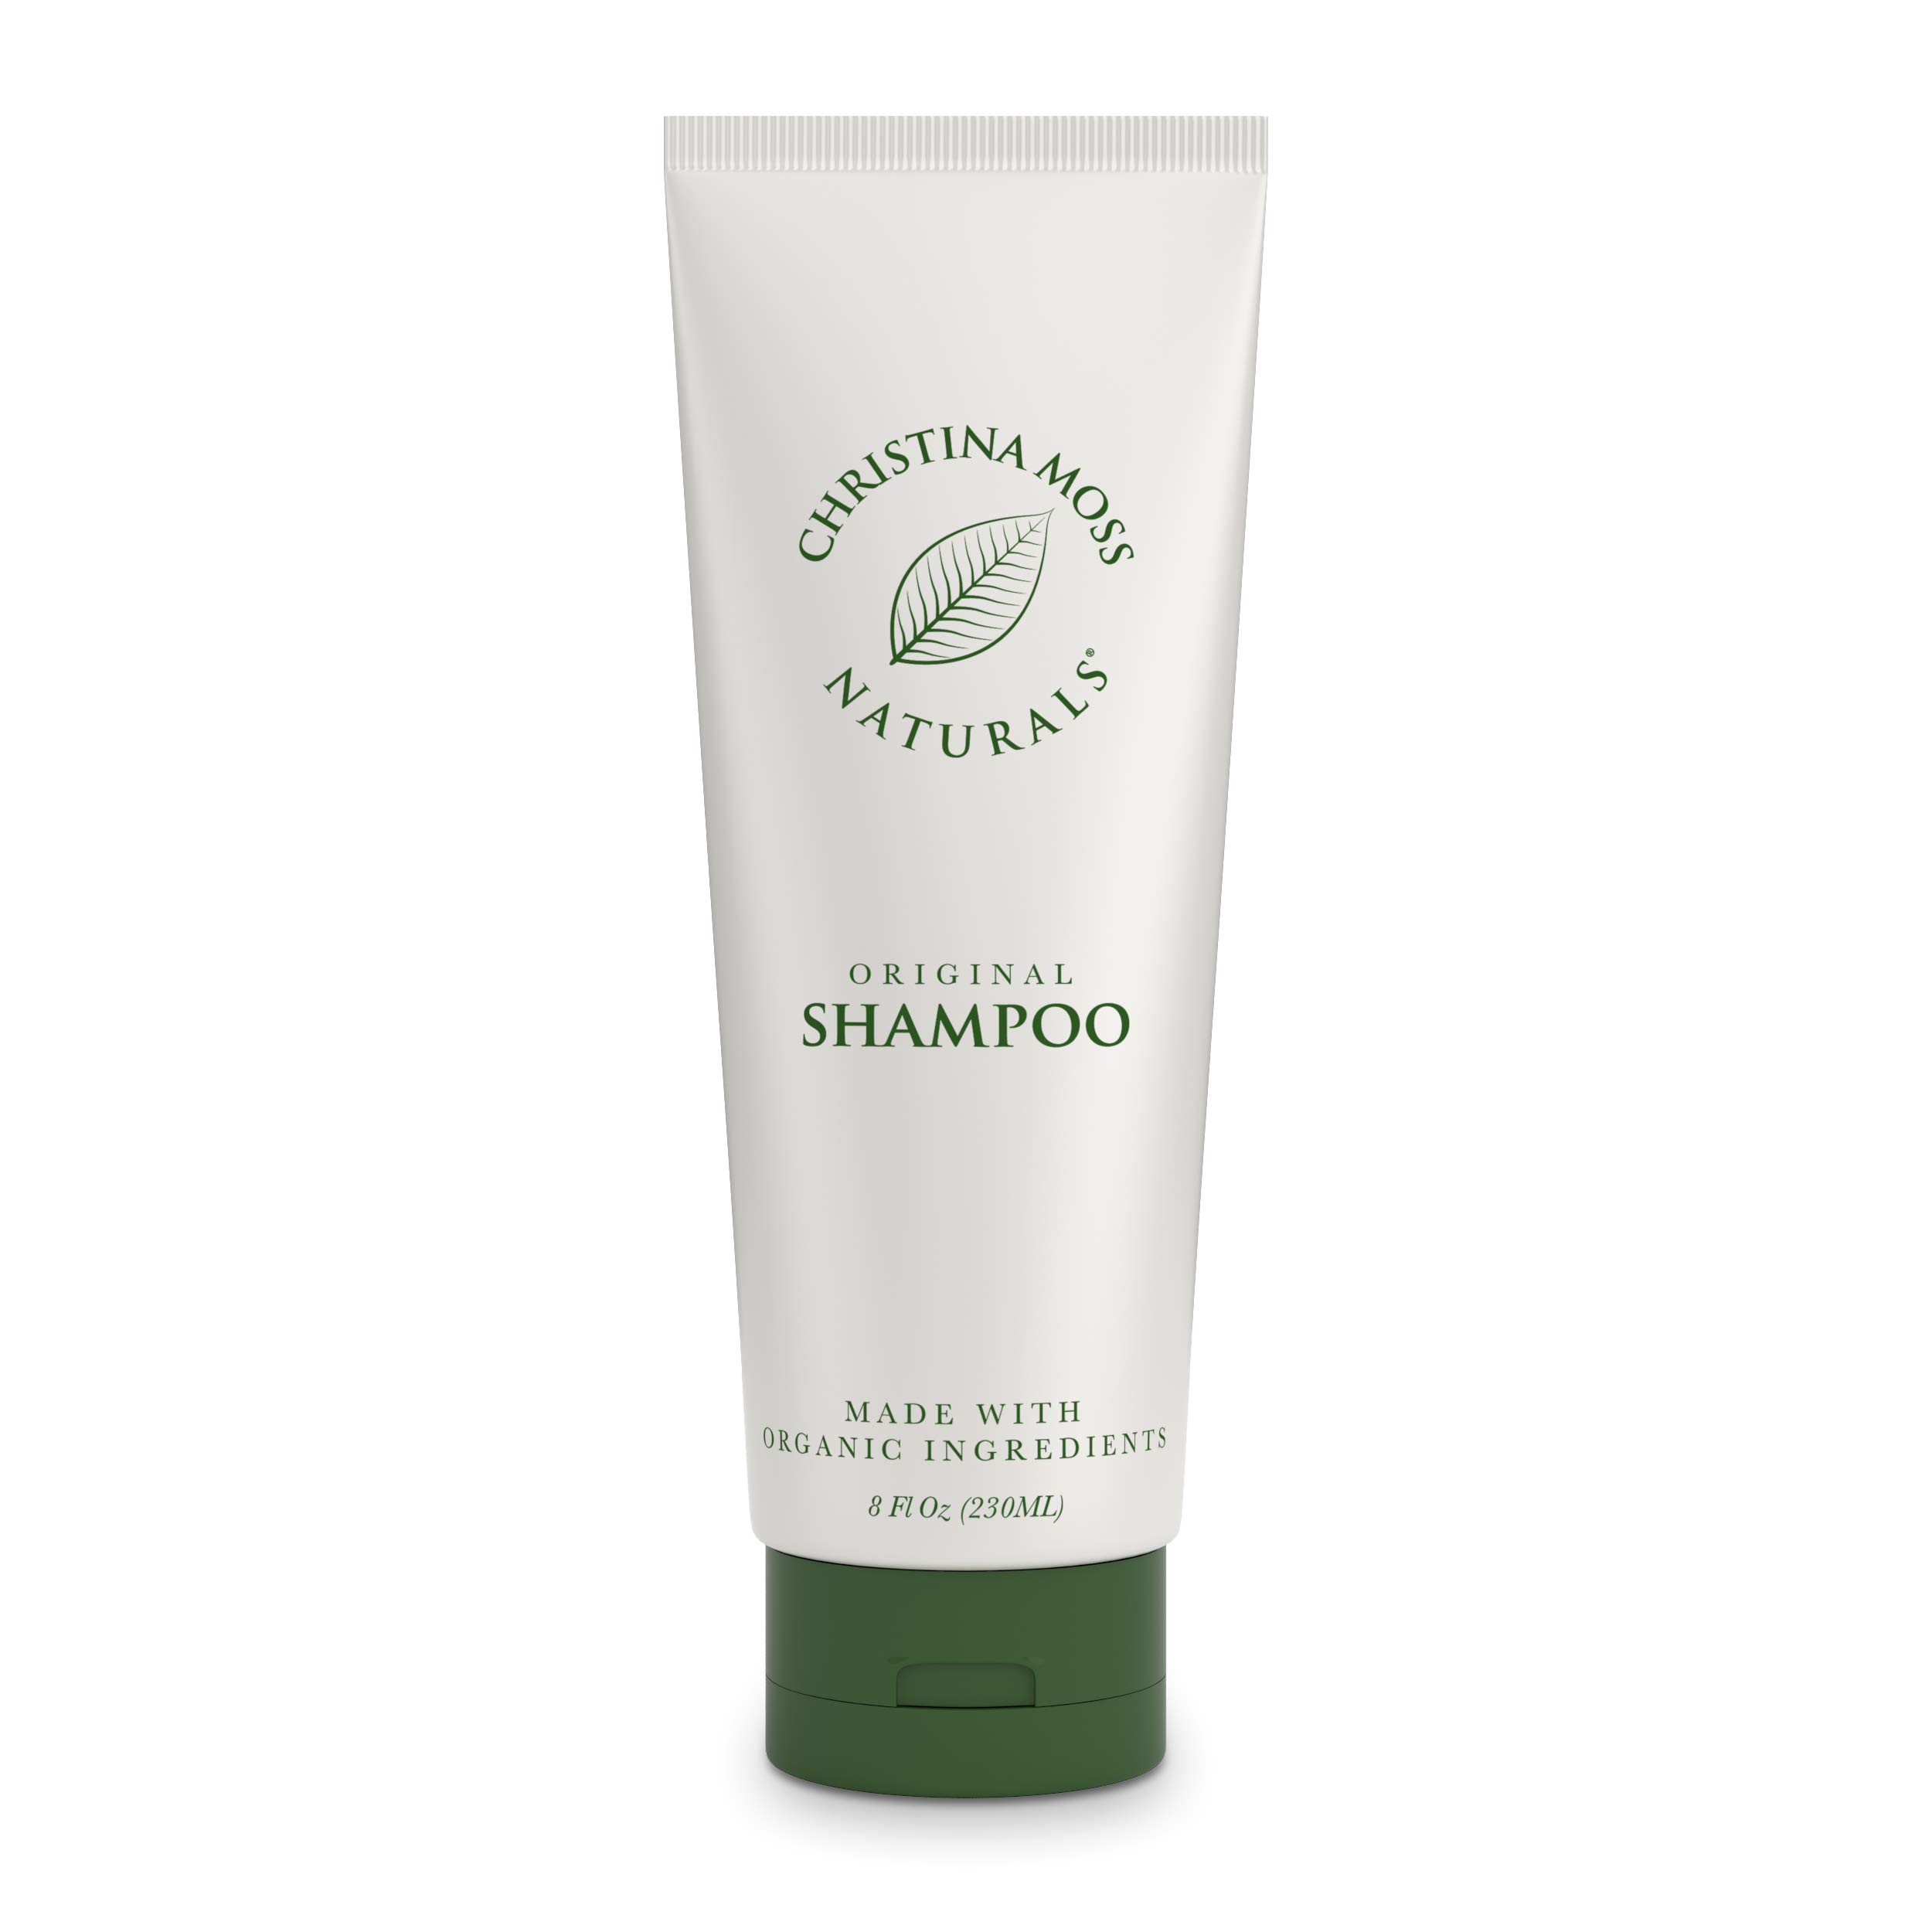 Hair Shampoo - With Organic Aloe & Essential Oils – Rich & Nourishing Ingredients for Moisturizing, Clarifying and Hydrating - Sulfate Free - Vegan – Good For Dry Hair - Dry Scalp - Oily, Curly Or Fine Hair - For Women & Men - Christina Moss Naturals